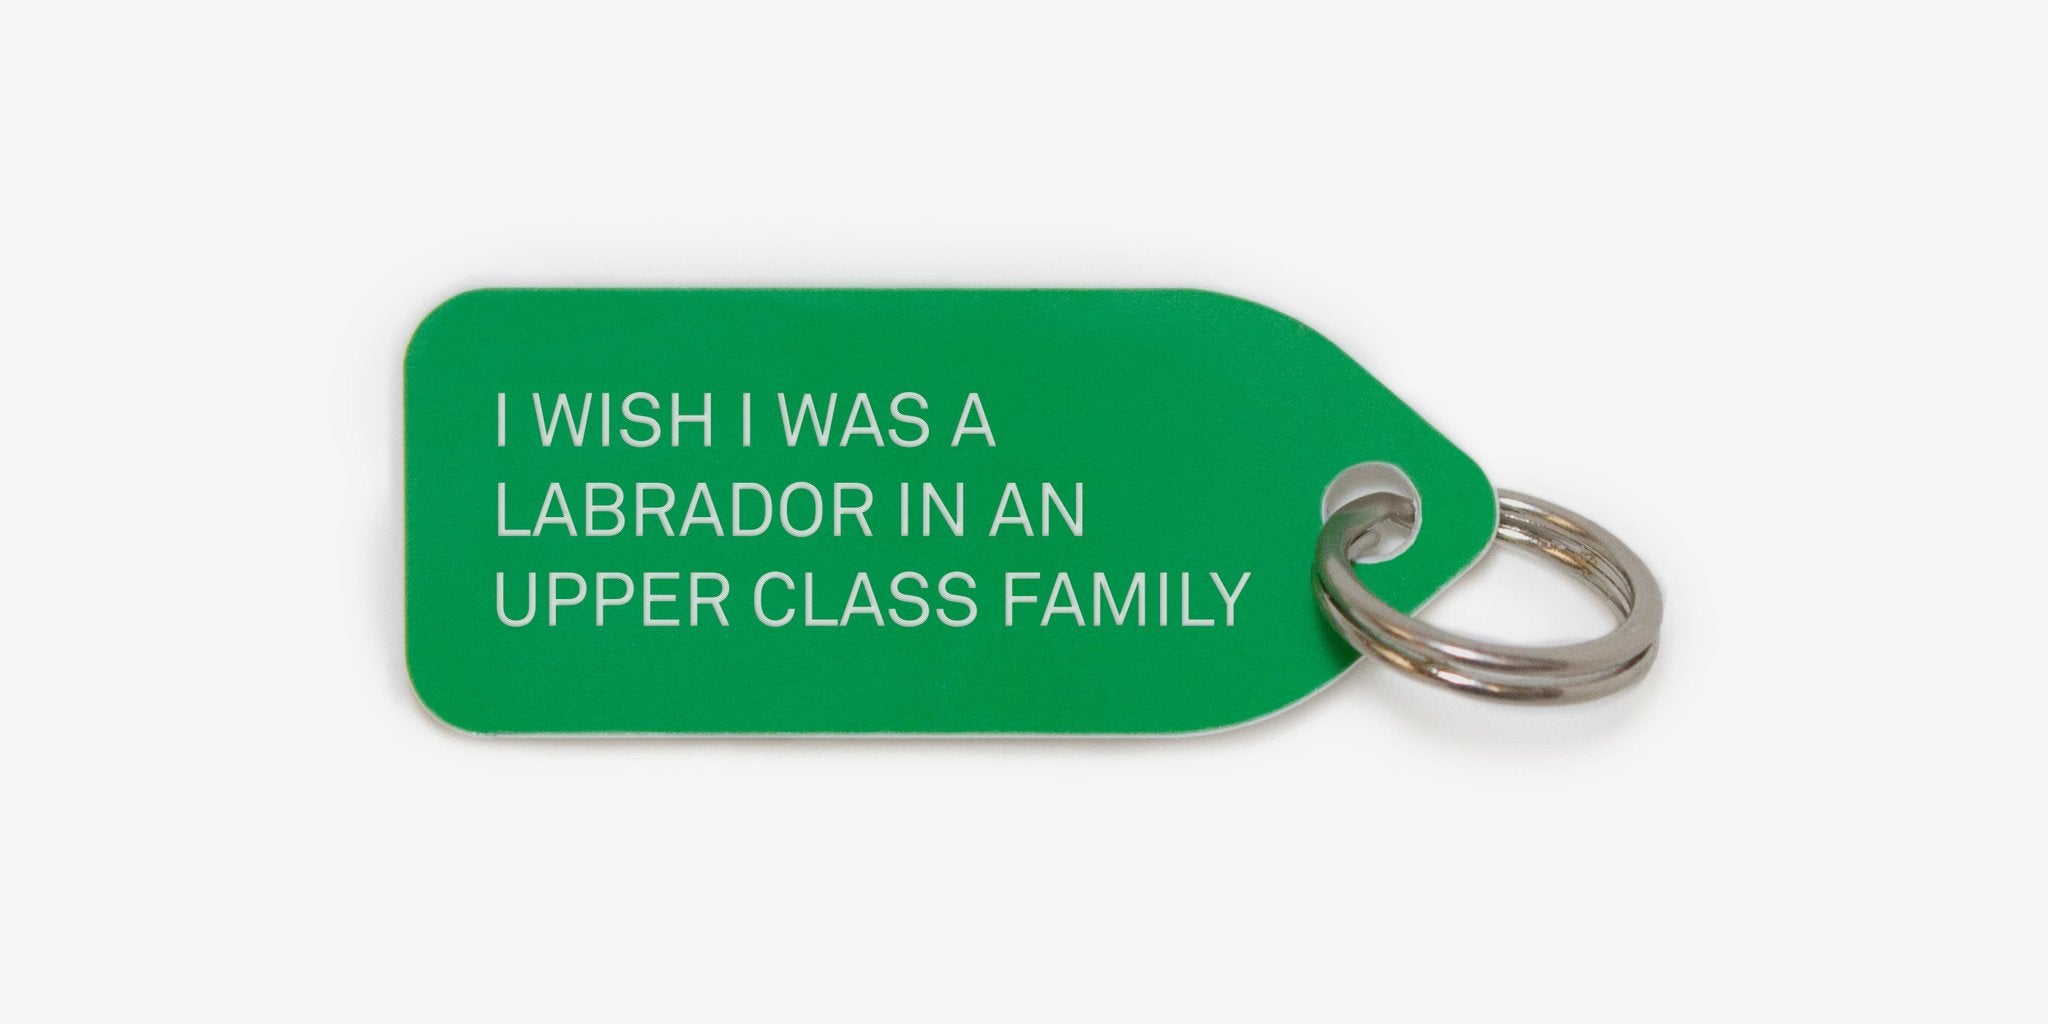 I wish I was a Labrador in an upper class family | dog tag